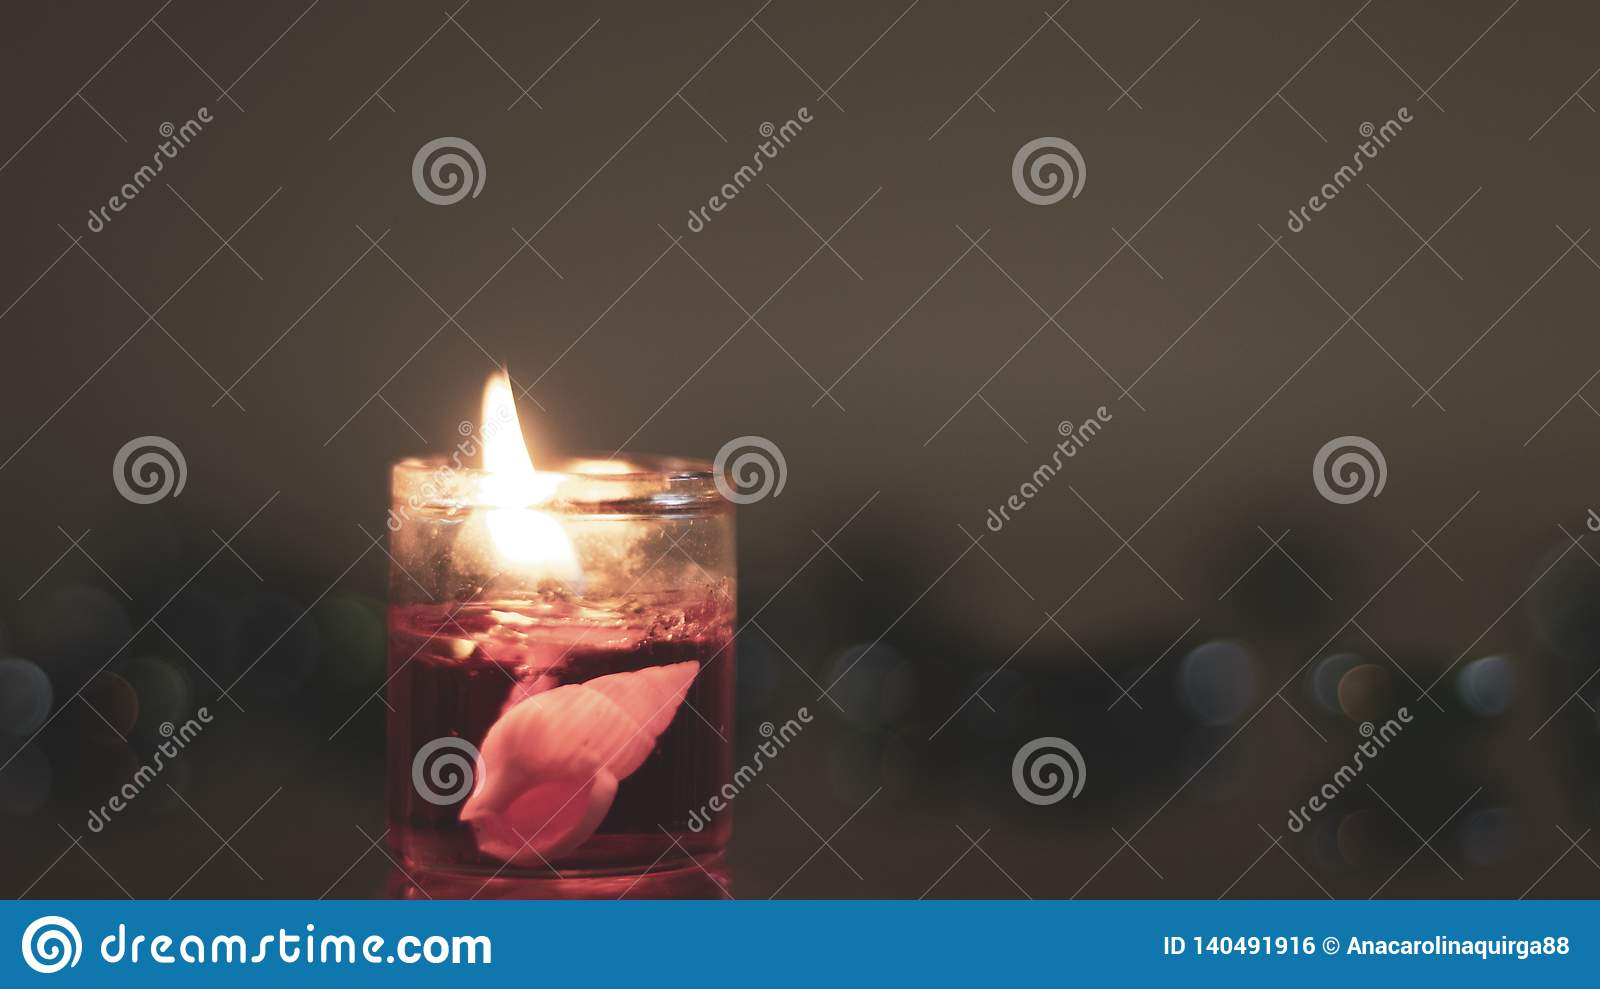 Marine objects inside a candle. Warmth and delicacy in a glowing adornment.